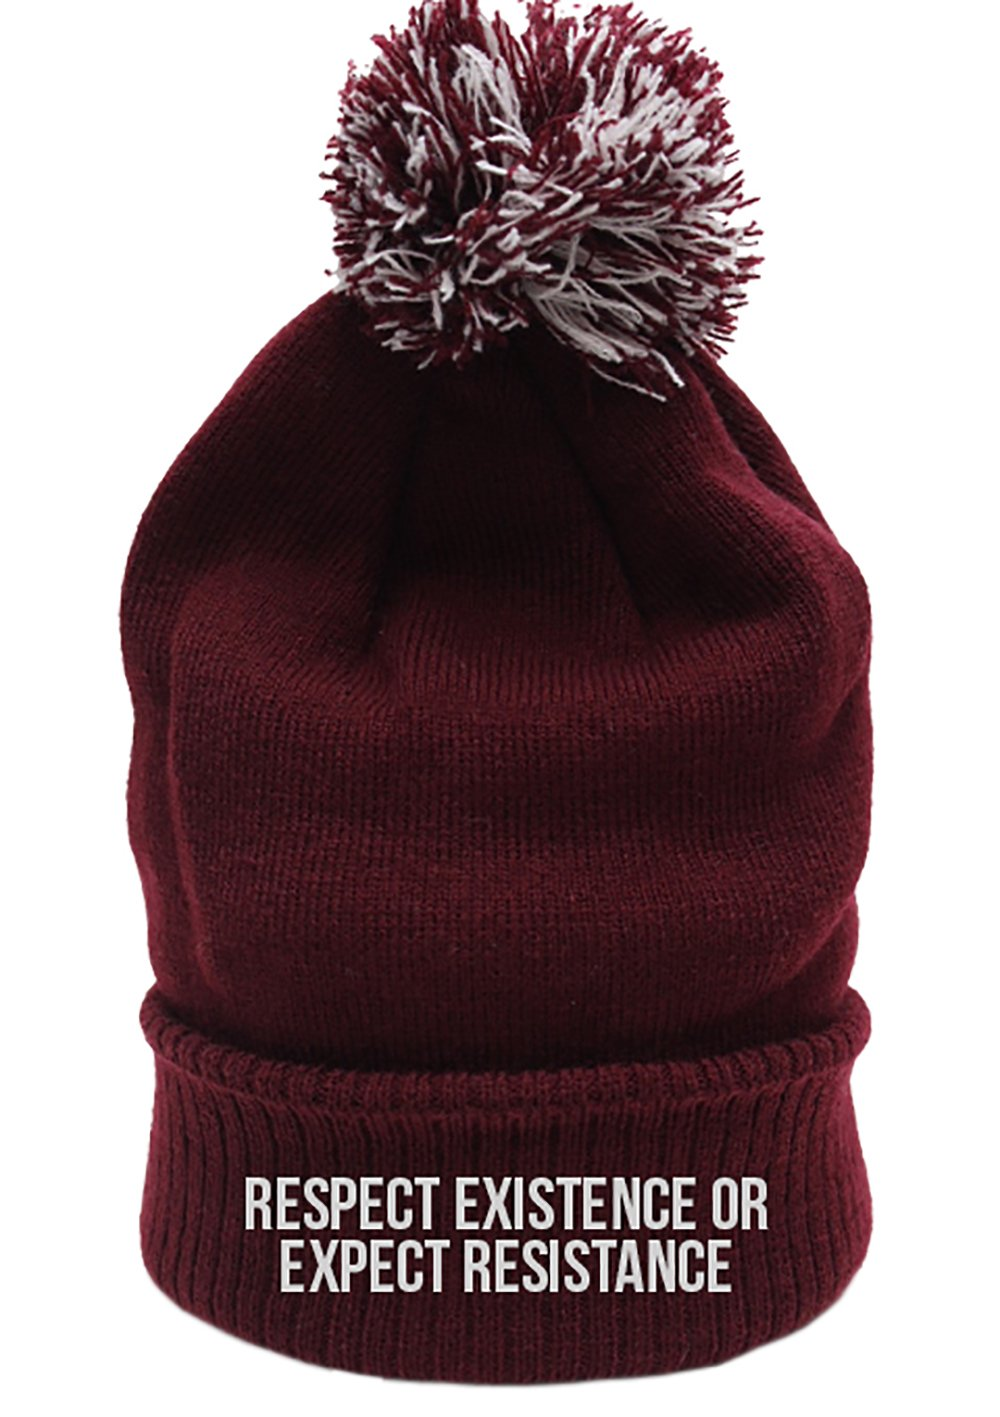 Respect Existence or Expect Resistance Beanie Hat